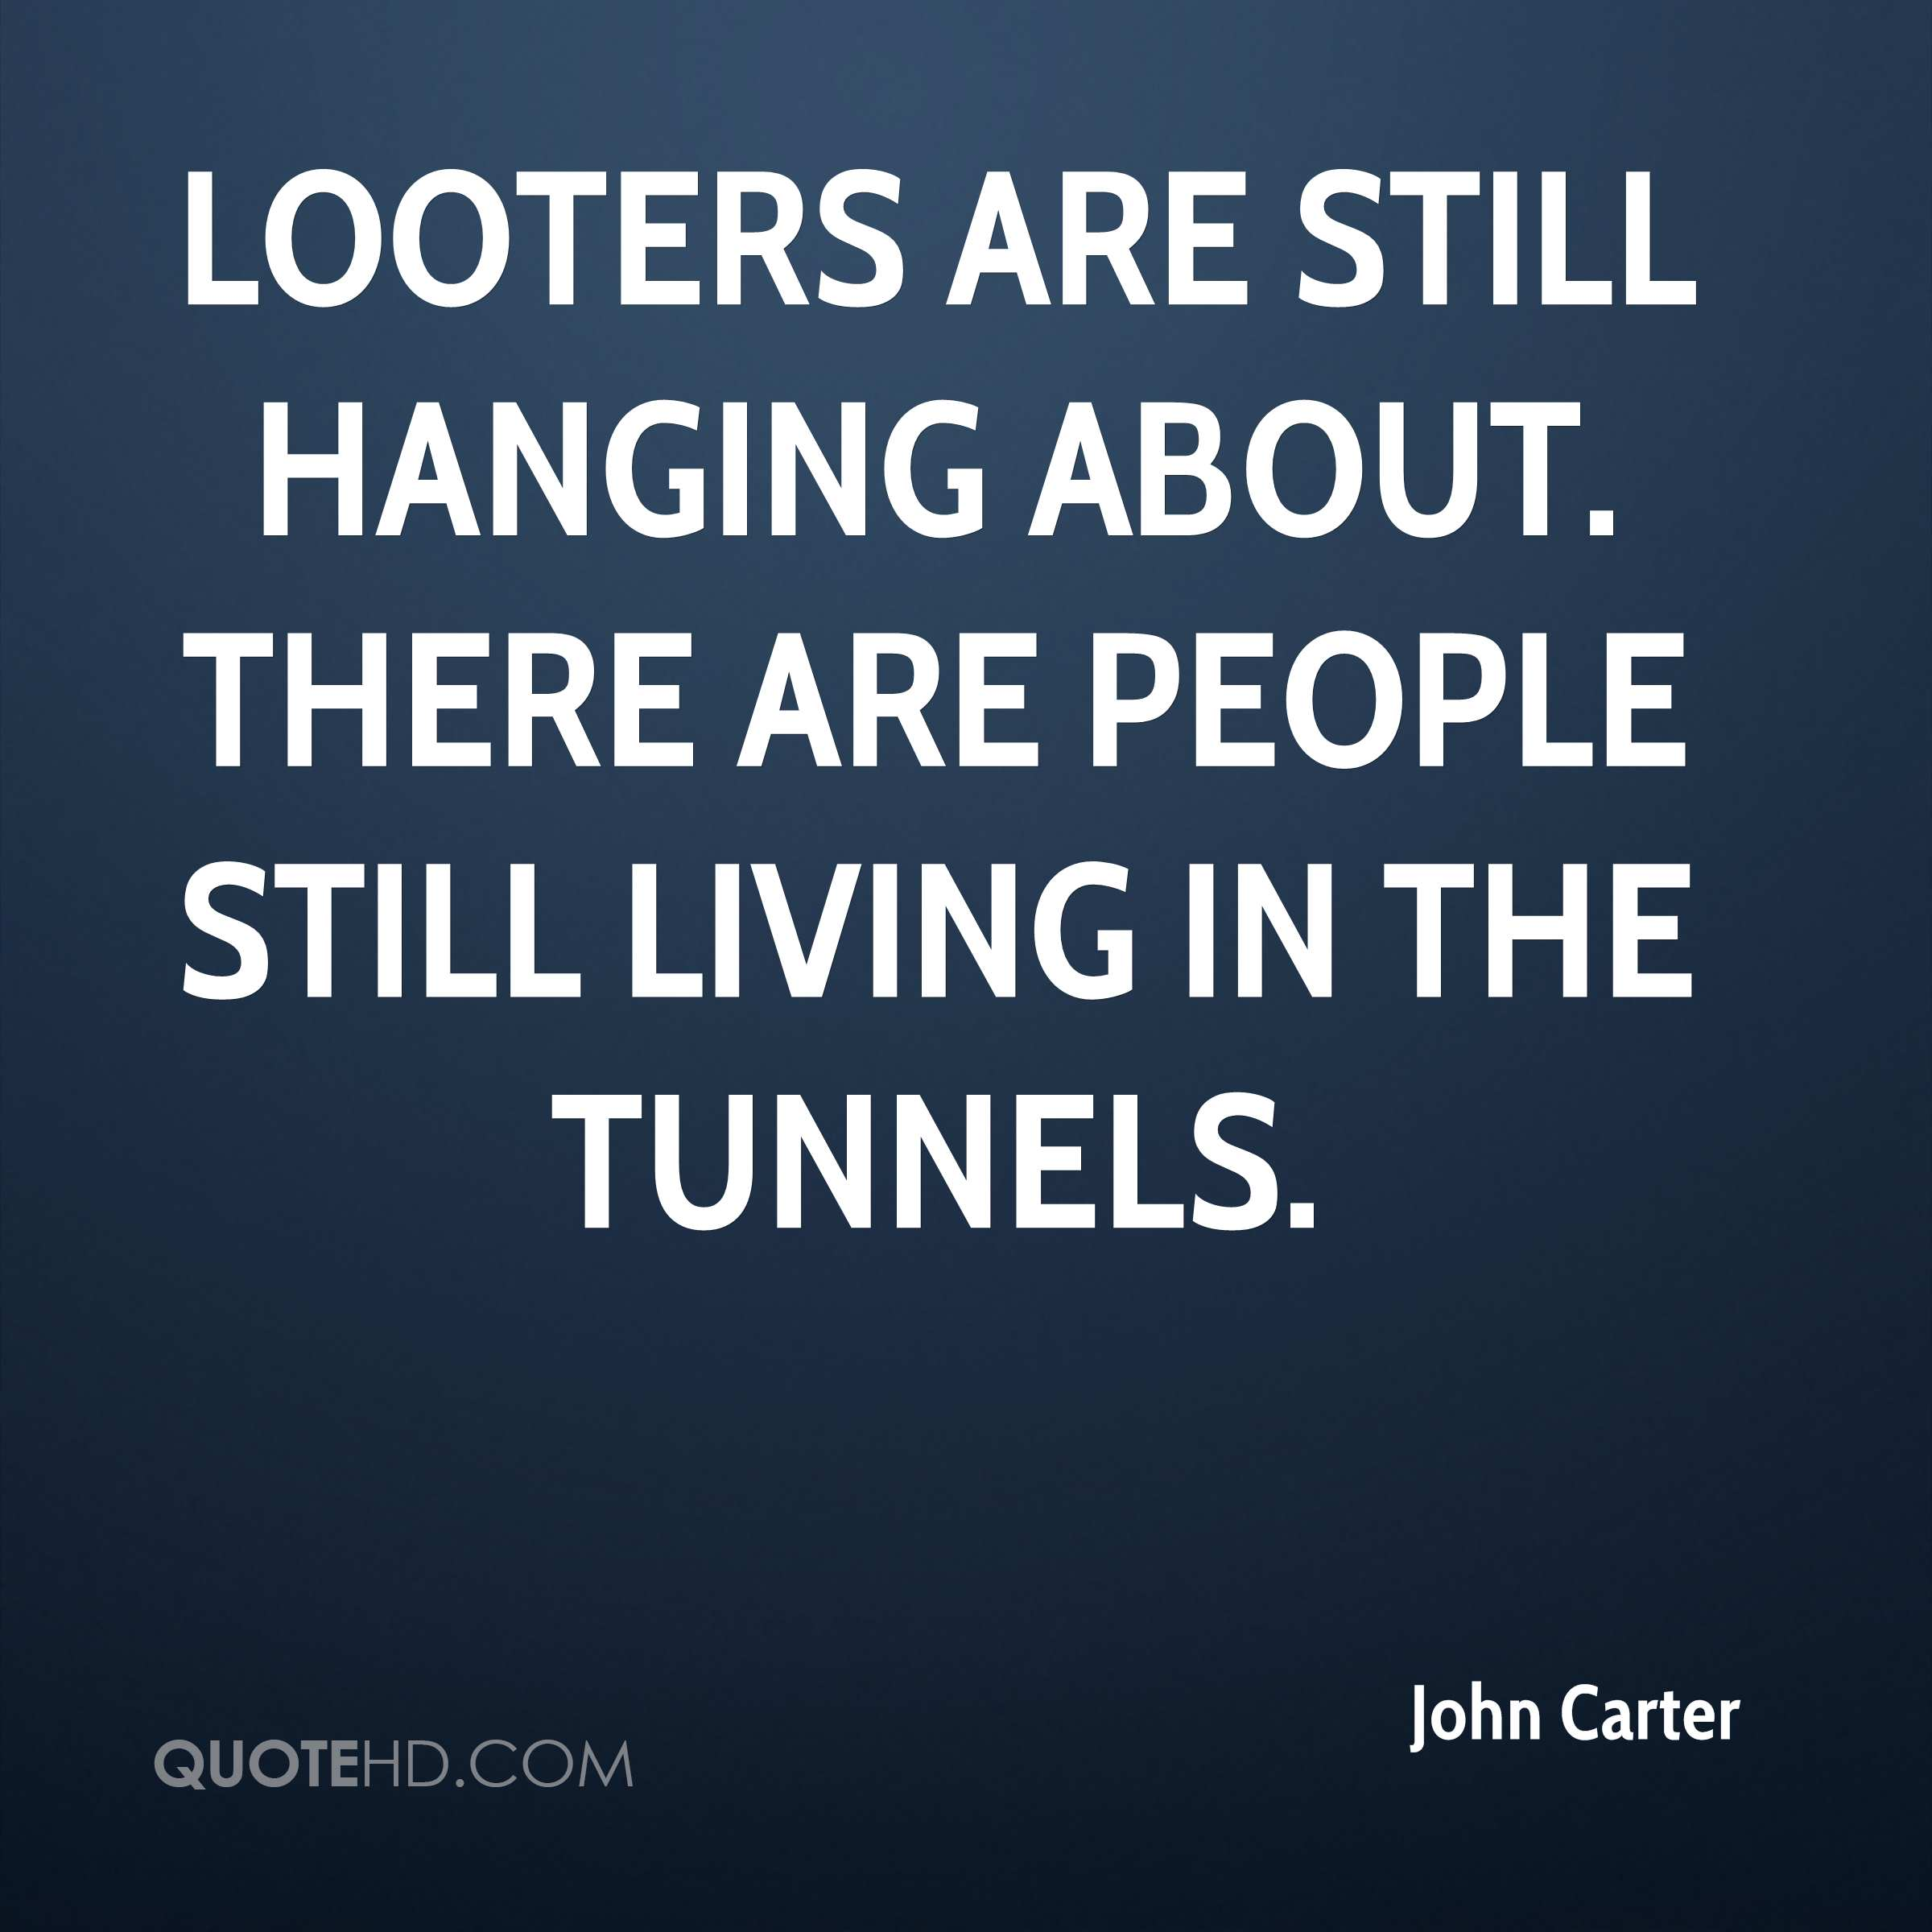 Looters are still hanging about. There are people still living in the tunnels.